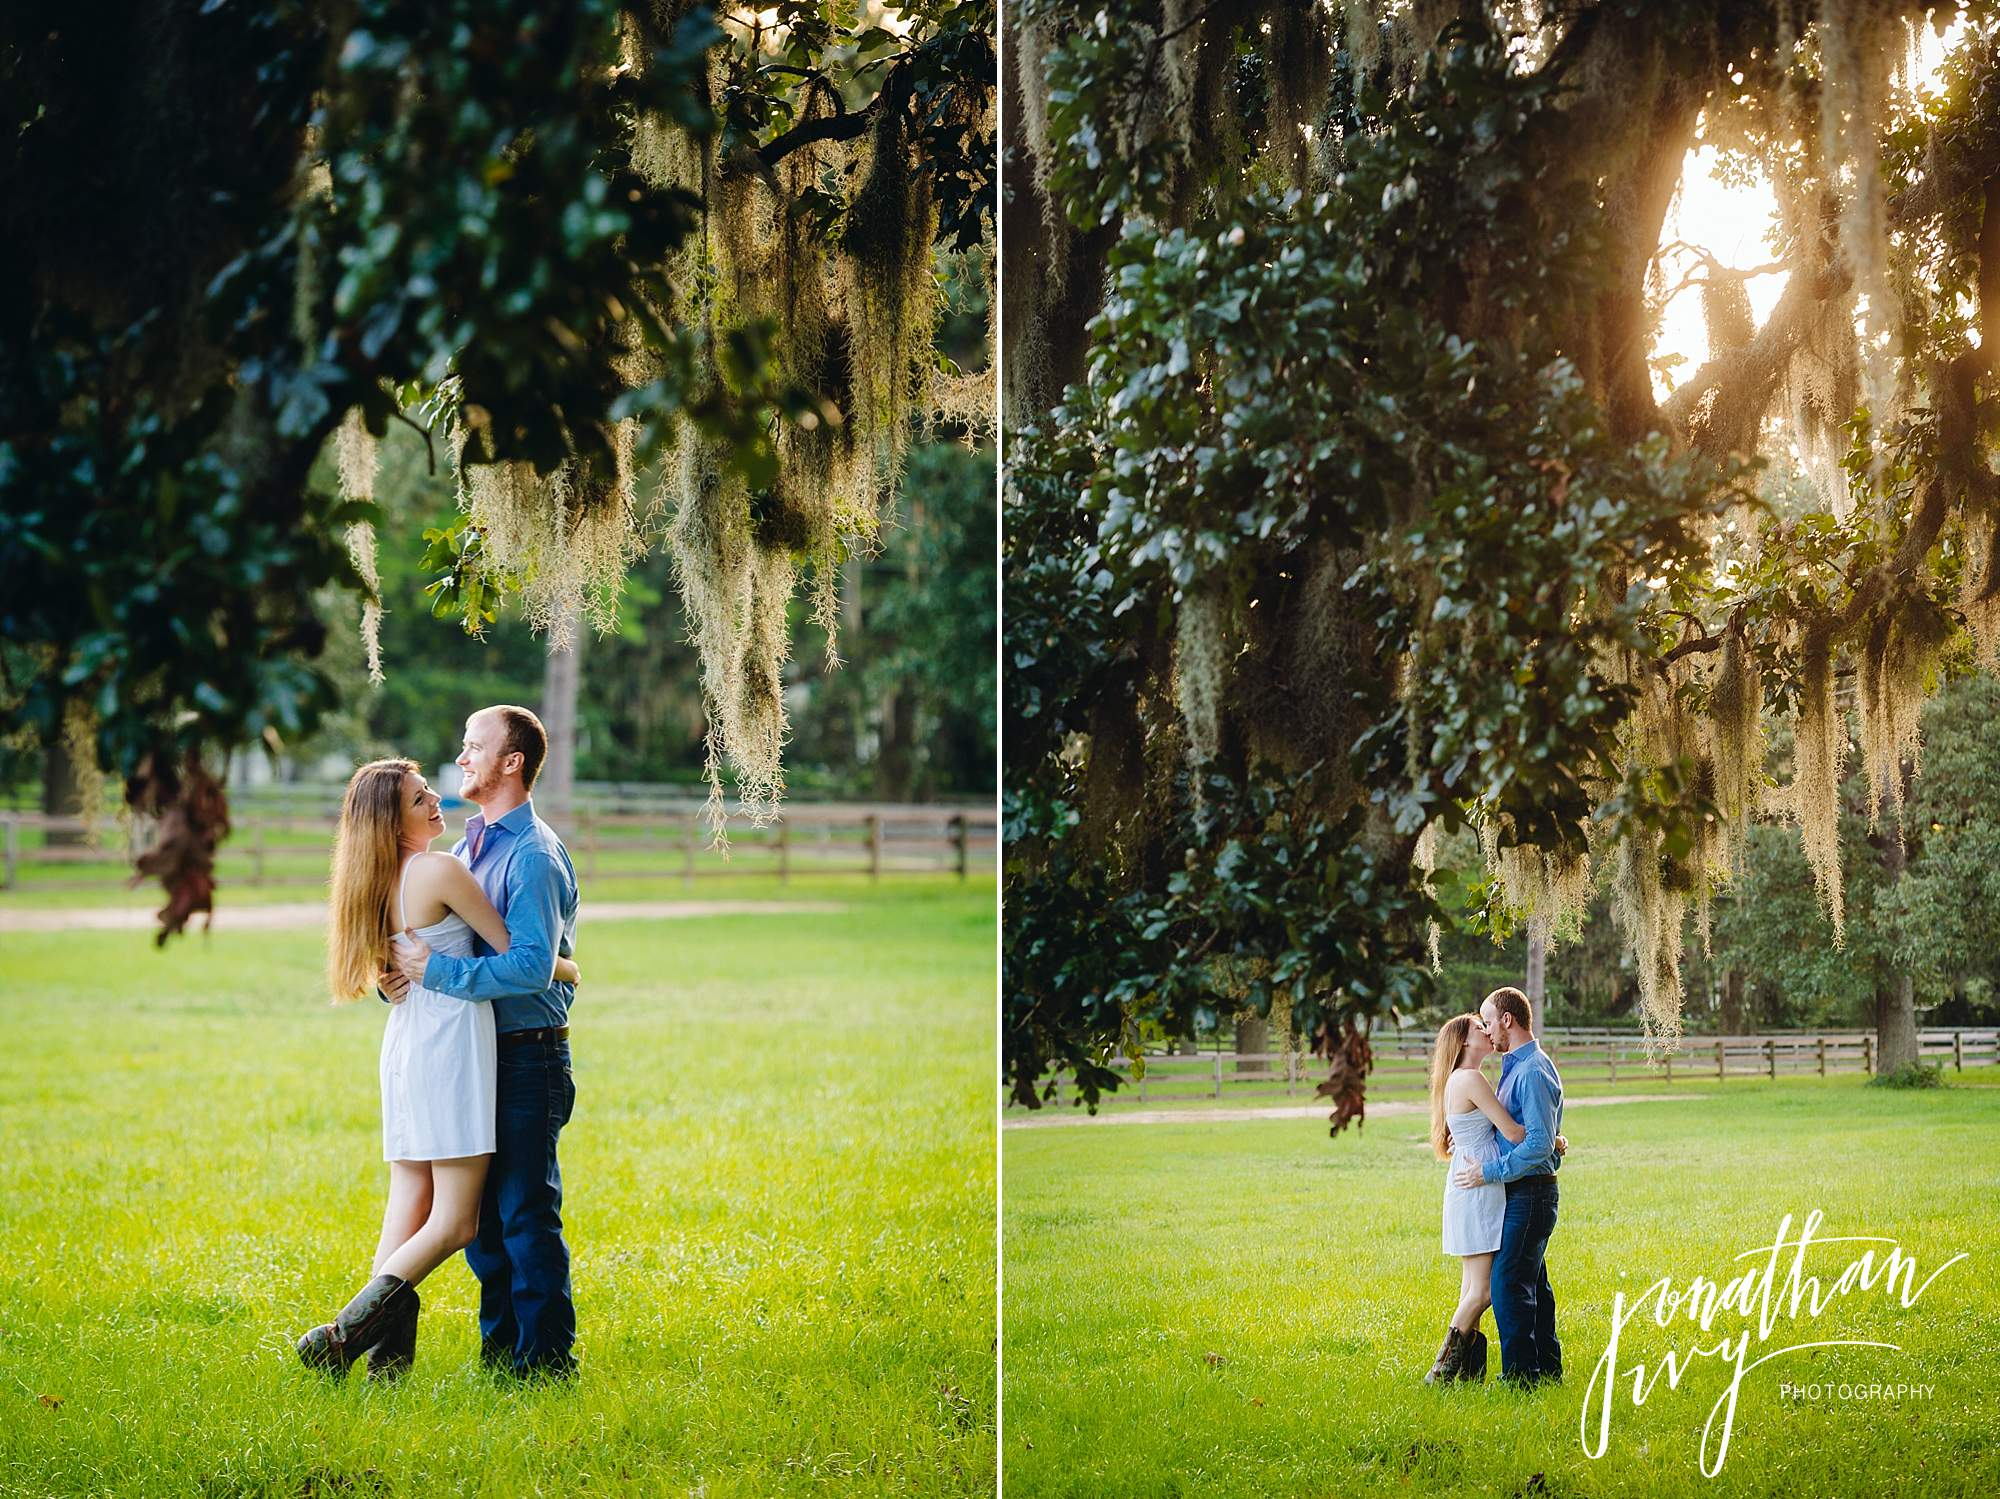 Country-rustic-engagement-photographer_0012.jpg